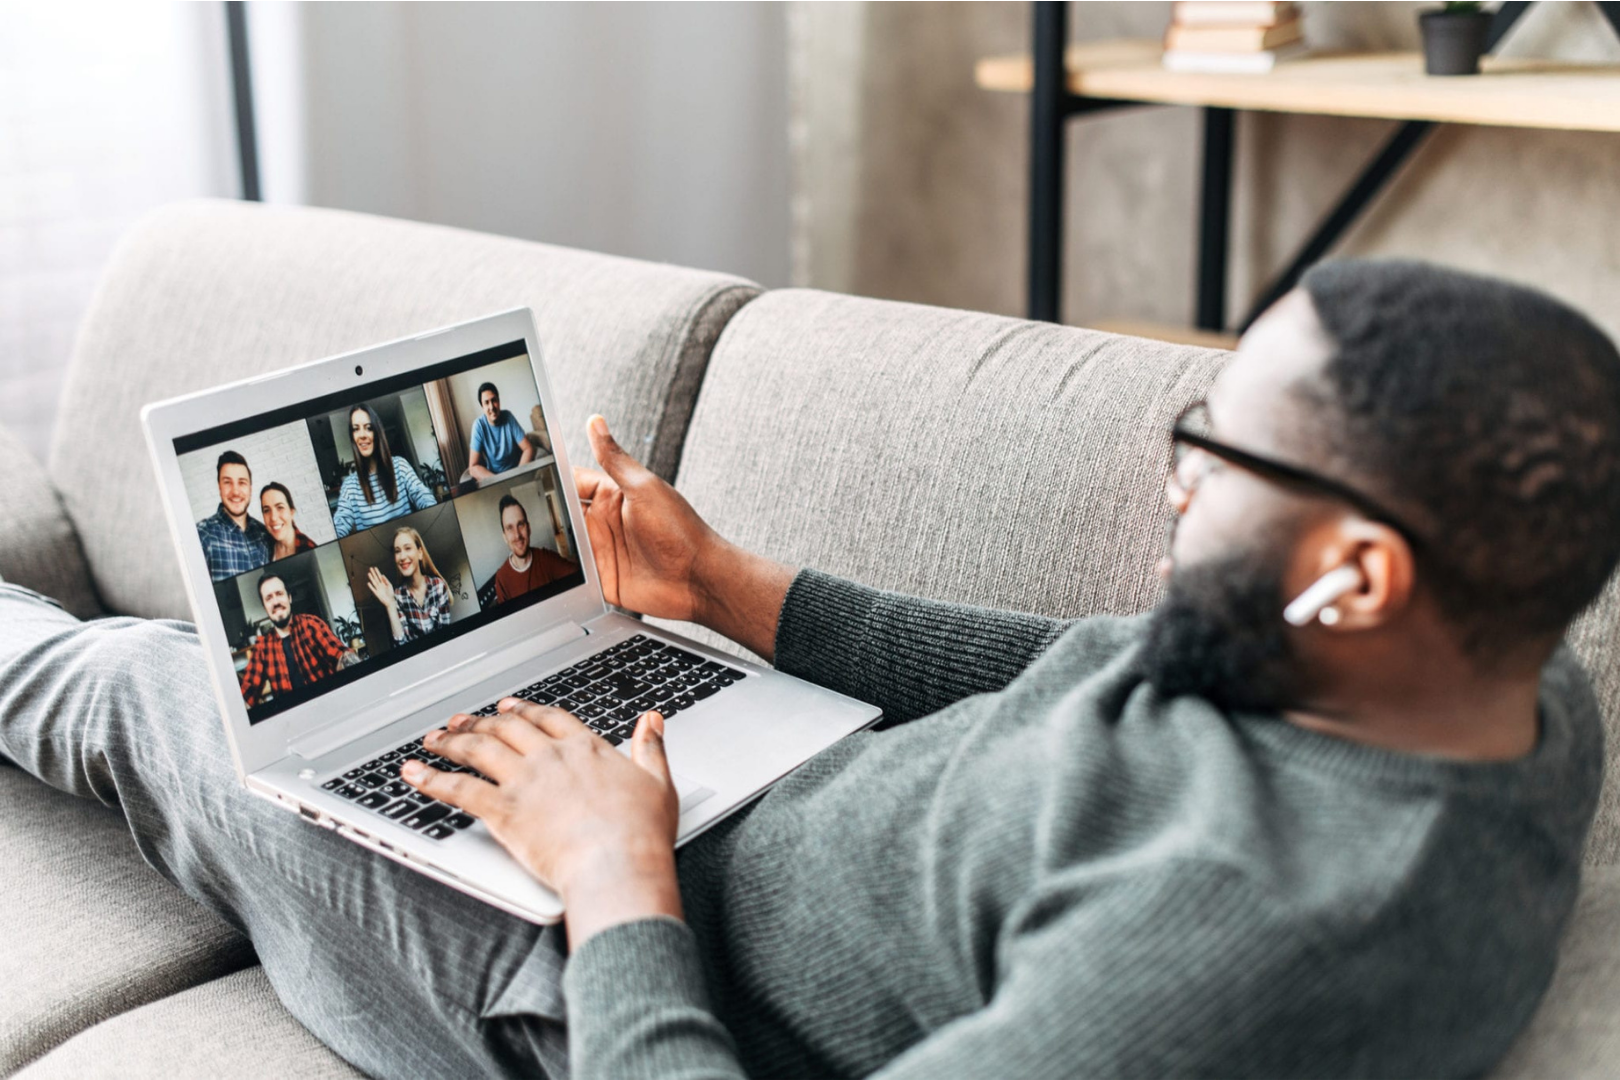 African American Man sitting on couch with laptop talking to other people virtually